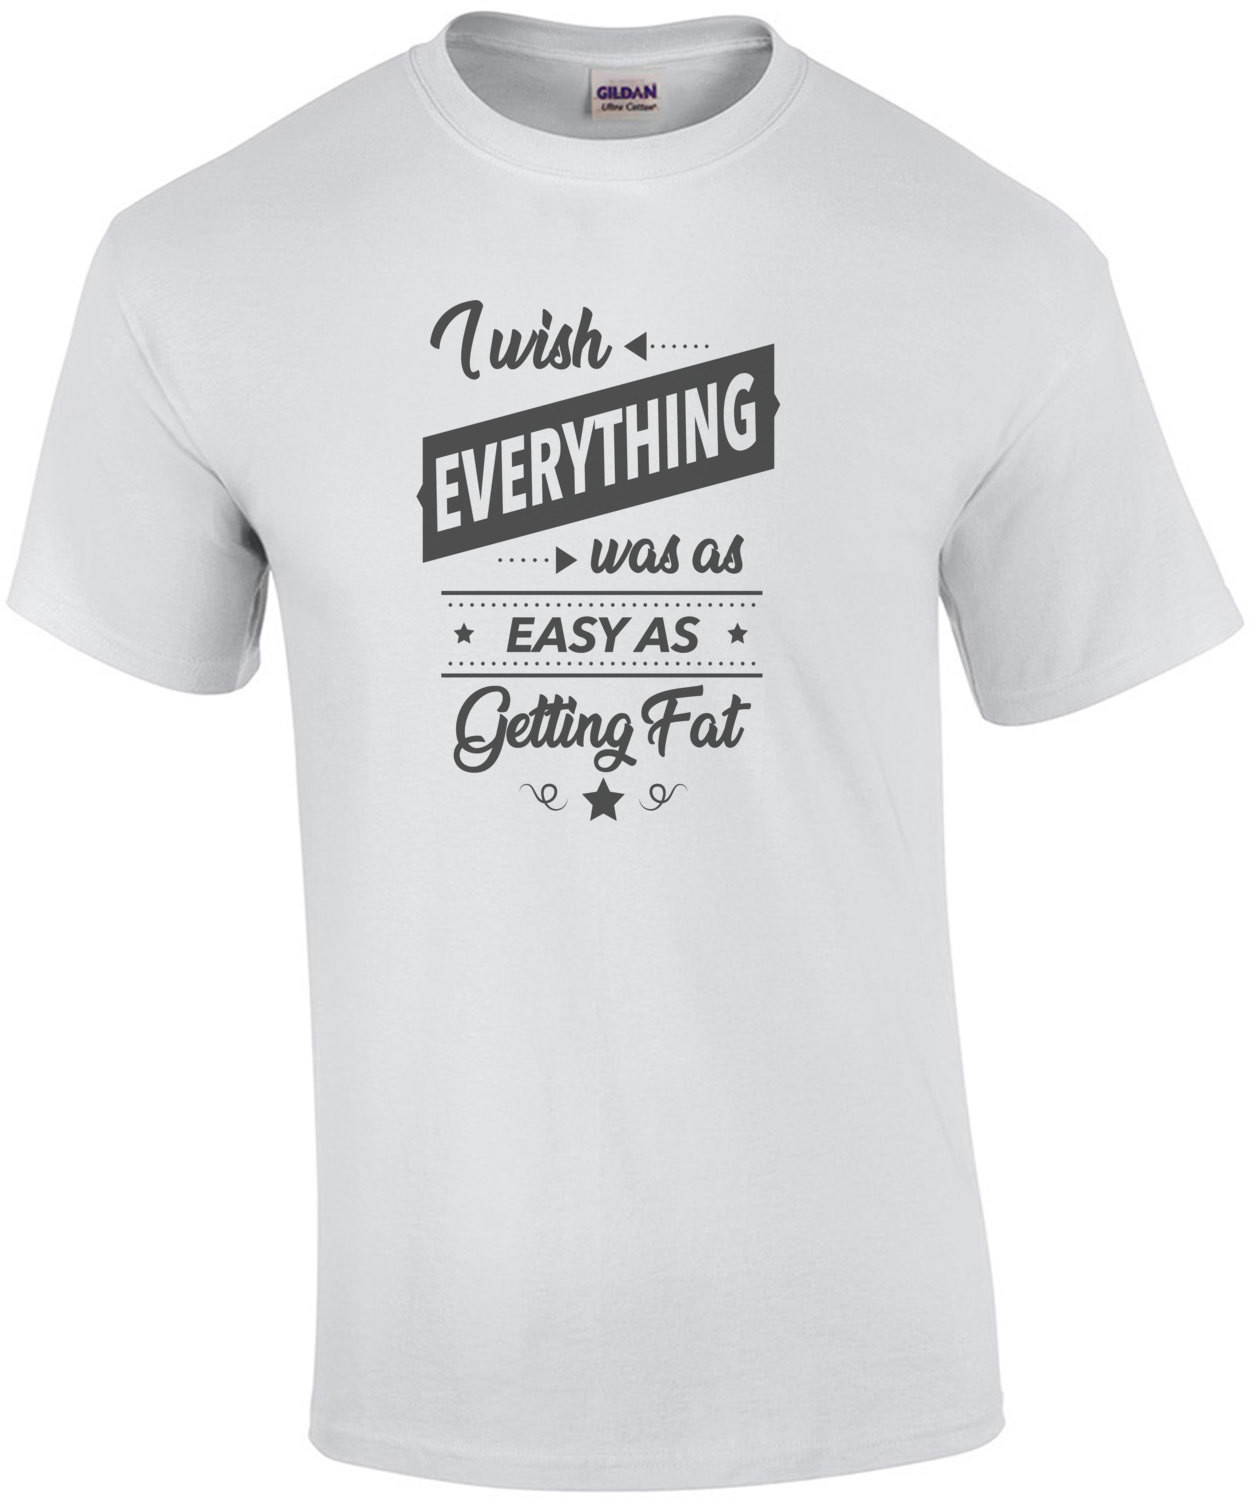 I wish everything was as easy as getting fat - fat guy t-shirt